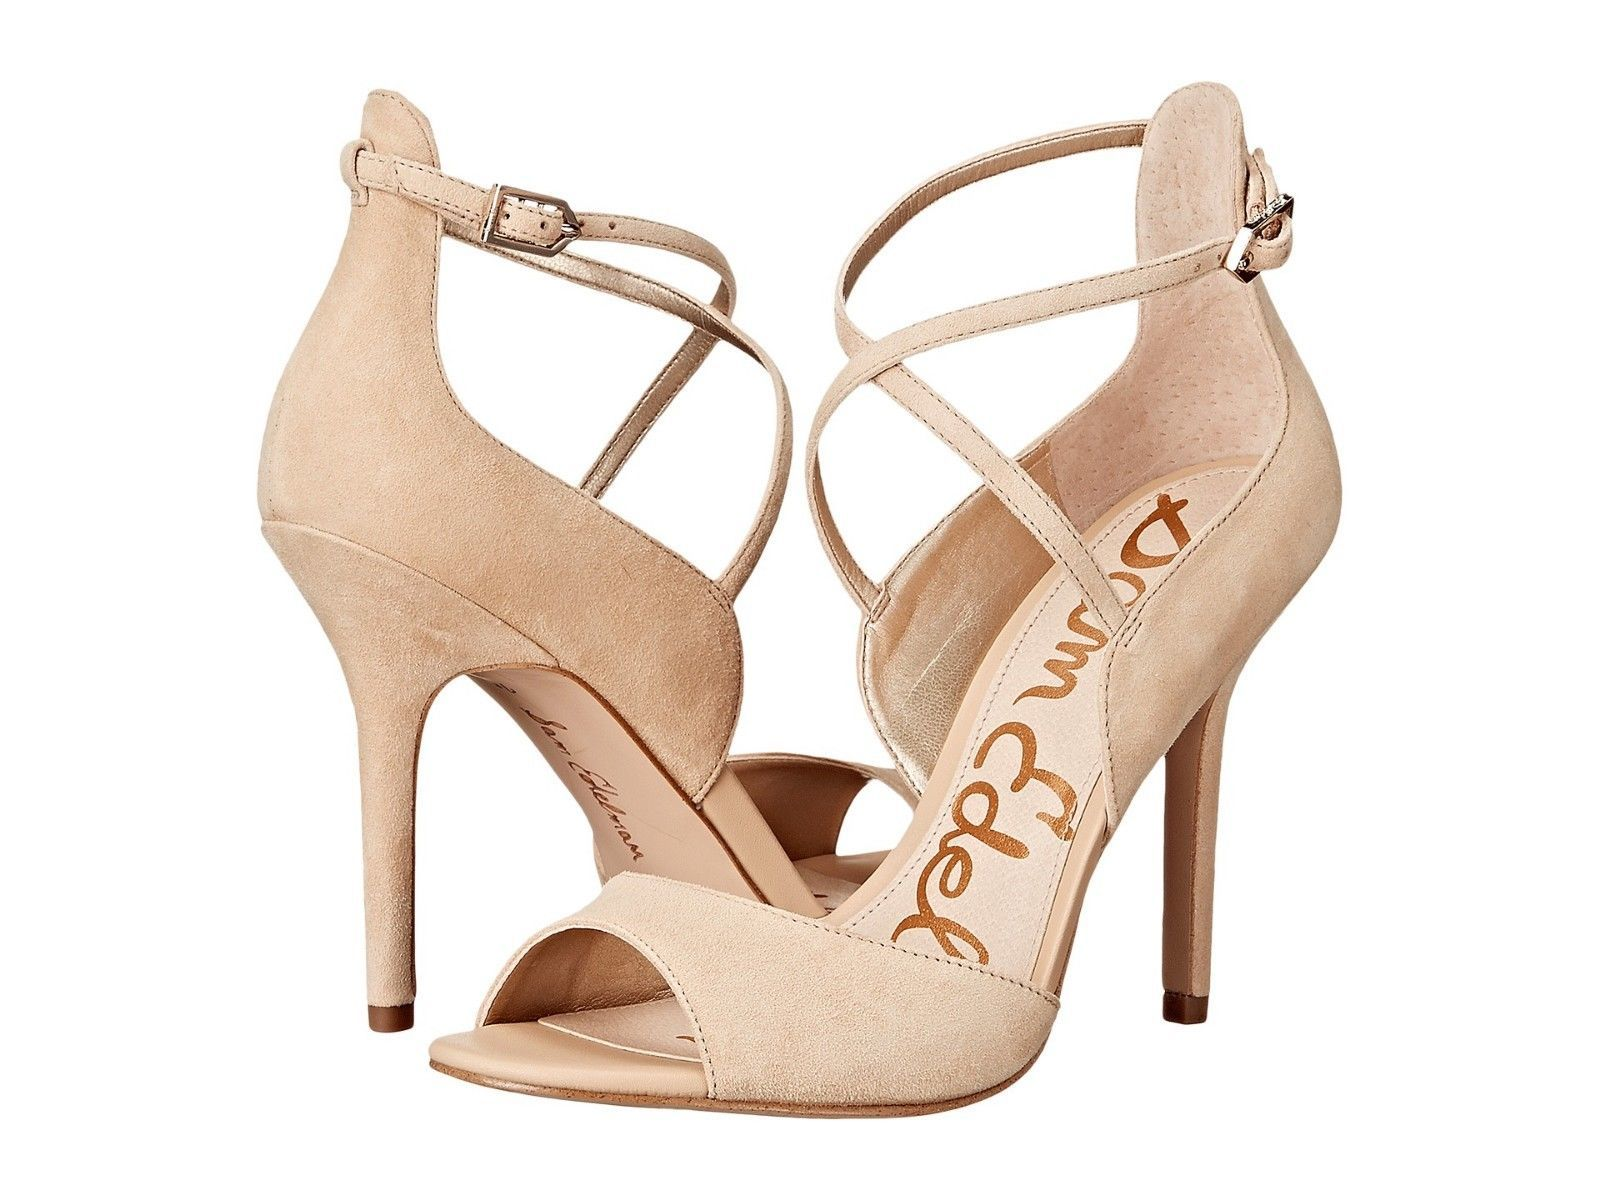 0e1ac3740f4a19 Sam Edelman Audrey Women s High Heels Sandals Desert Nude Suede Leather  Size 9.5 -  58.58